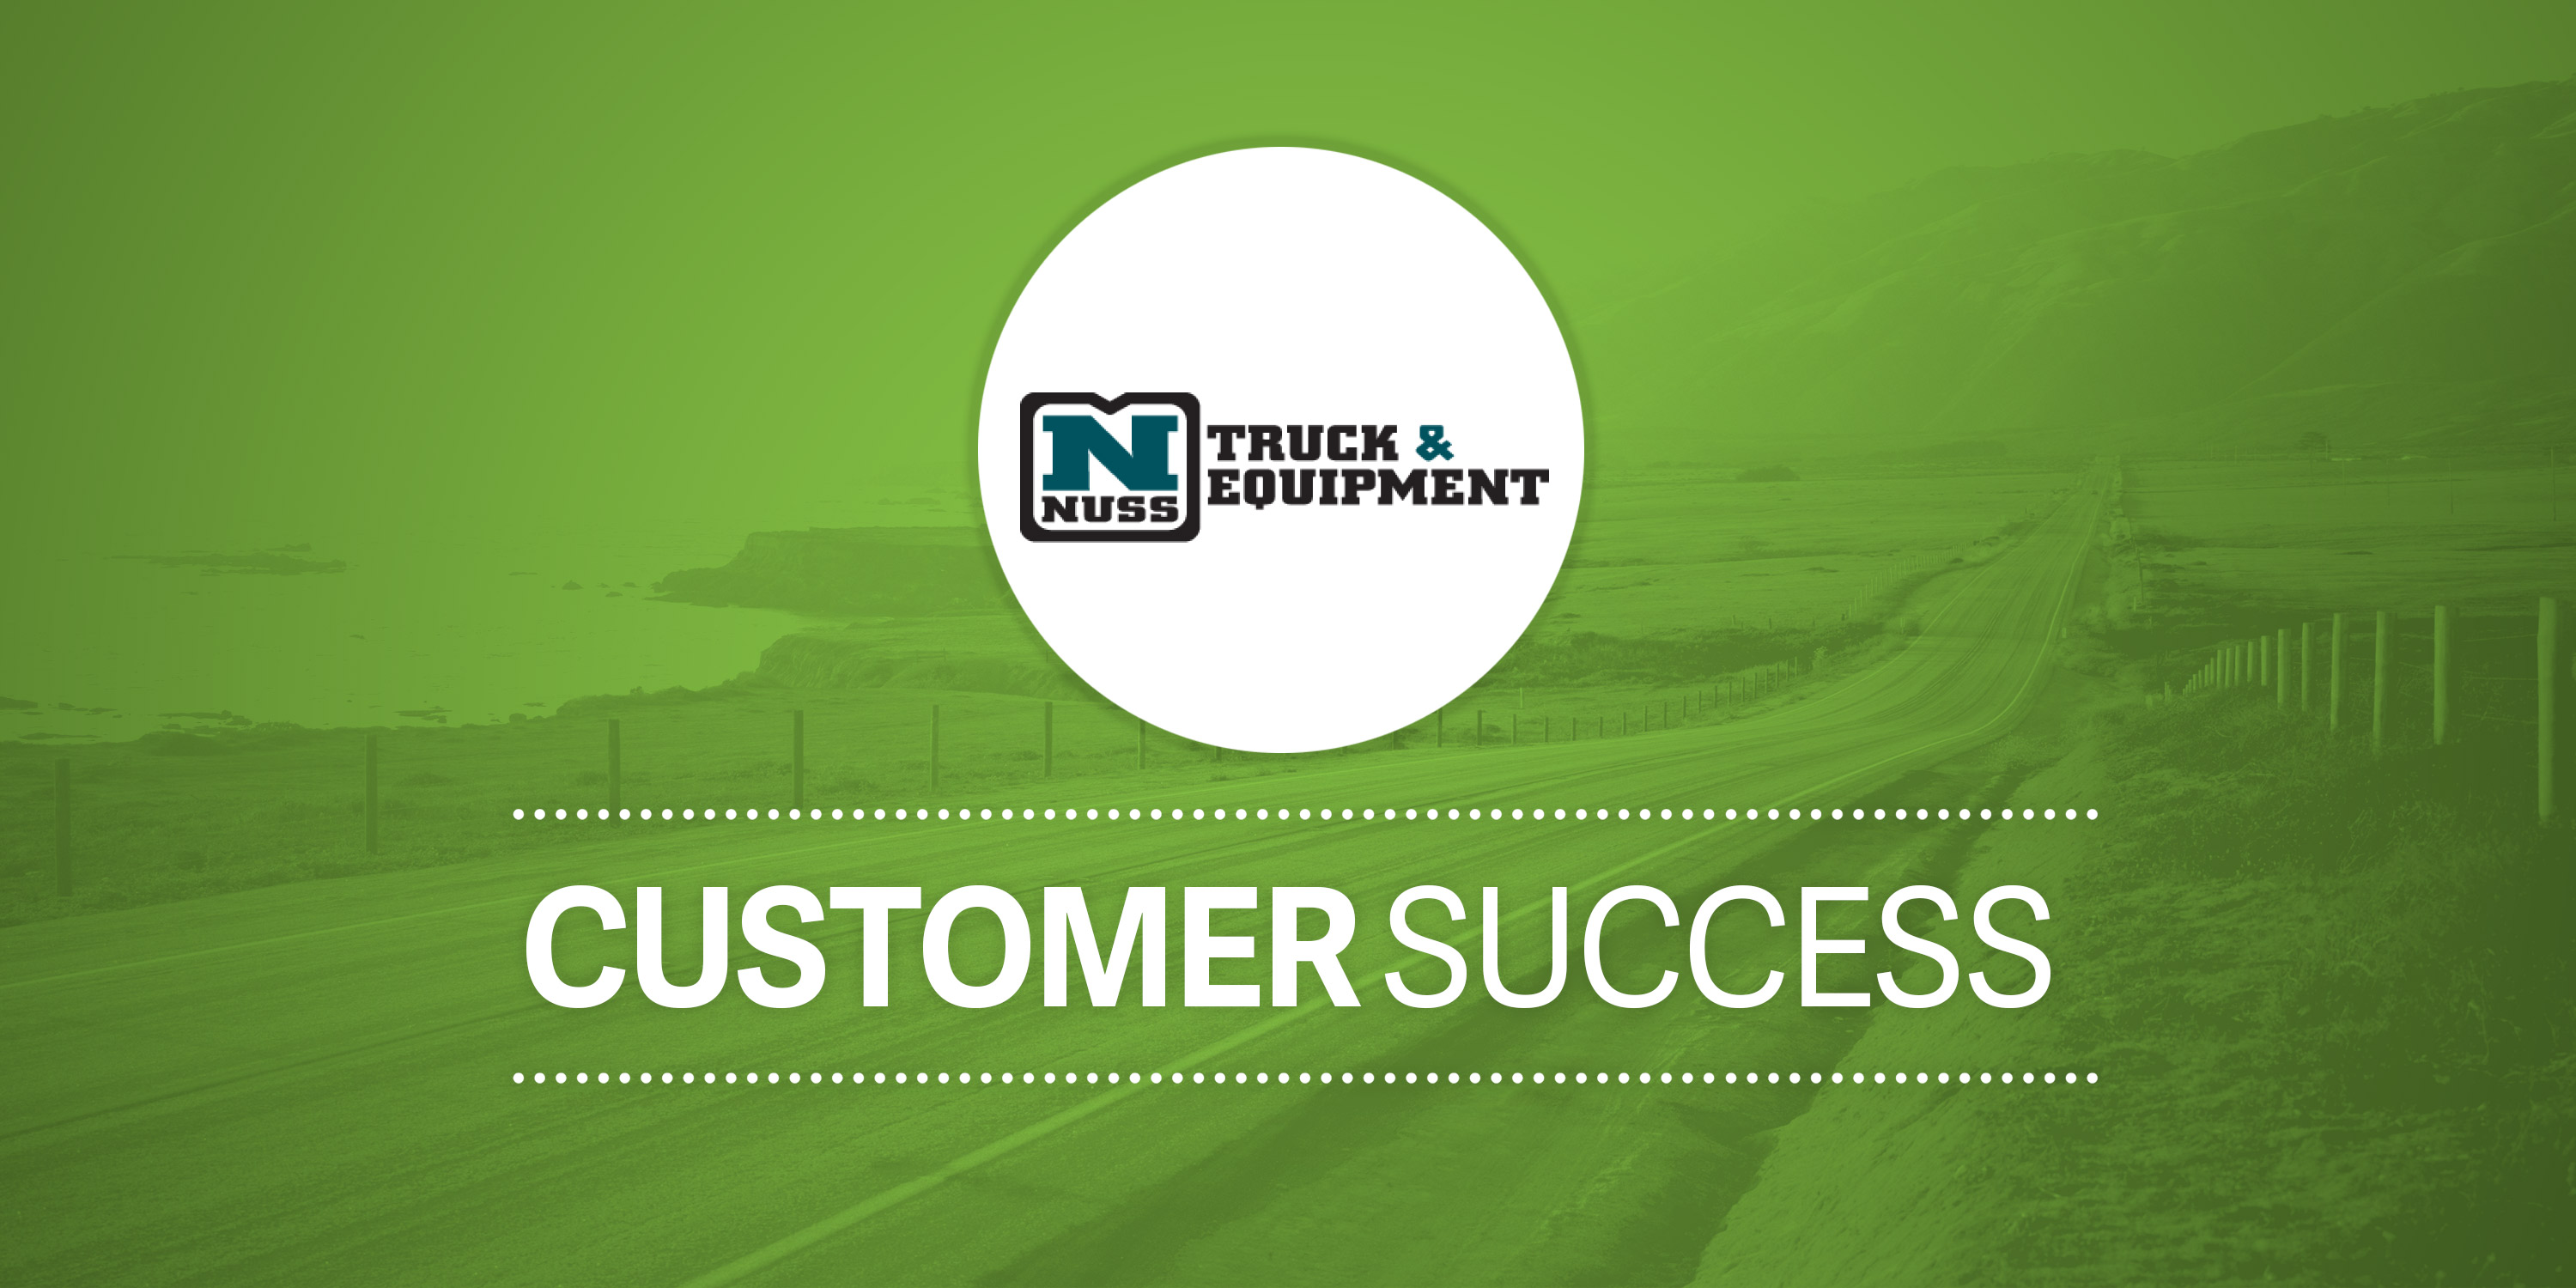 Case Study: Nuss Truck & Equipment